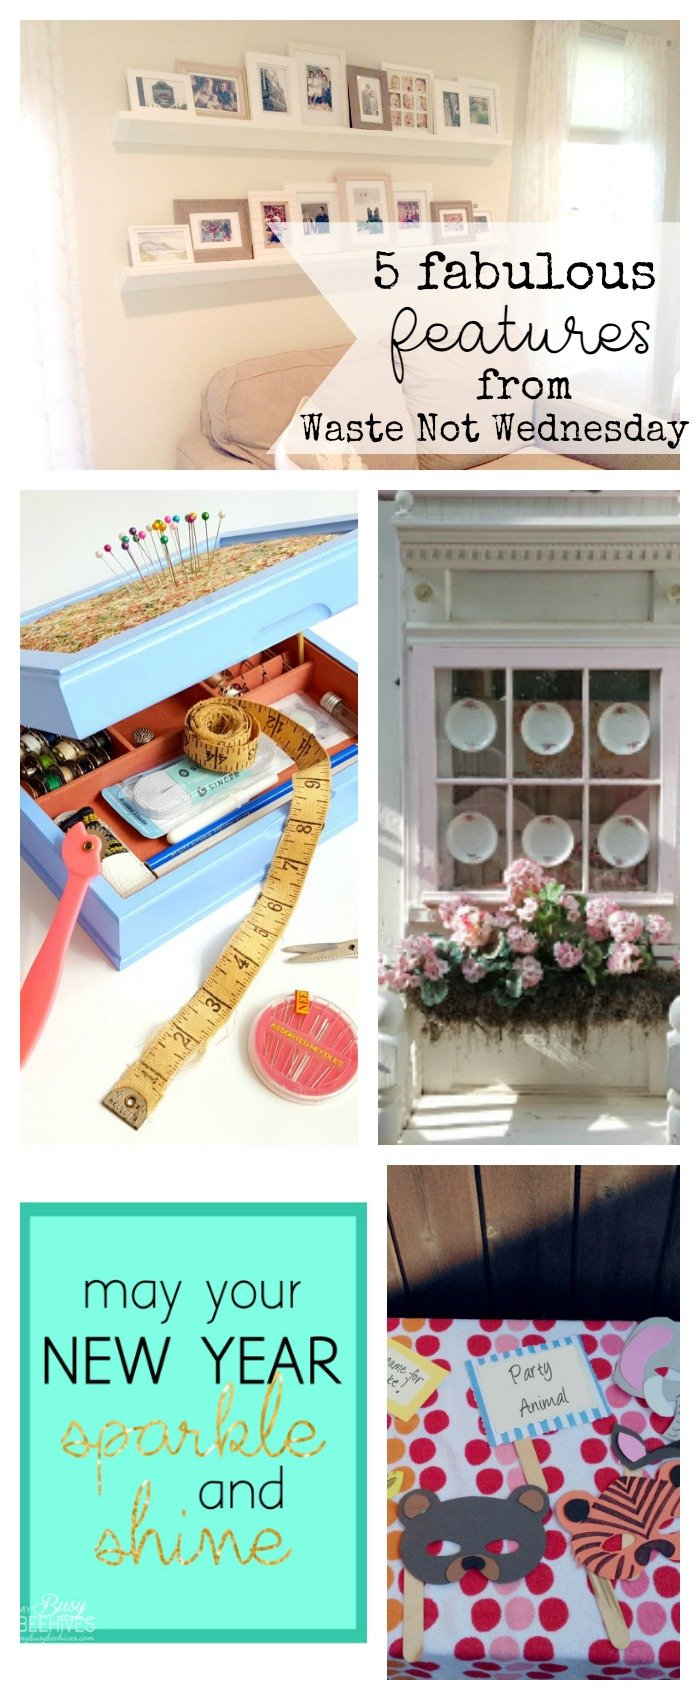 Features from our fun Waste Not Wednesday-32 DIY, Craft, Home Decor and Recipe party this week! Be sure to join us and share your DIY, Craft, Home Decor and favourite recipes! | www.raggedy-bits.com | www.mythriftyhouse.com | www.smallhomesoul.com | www.gratefullyvintage.com